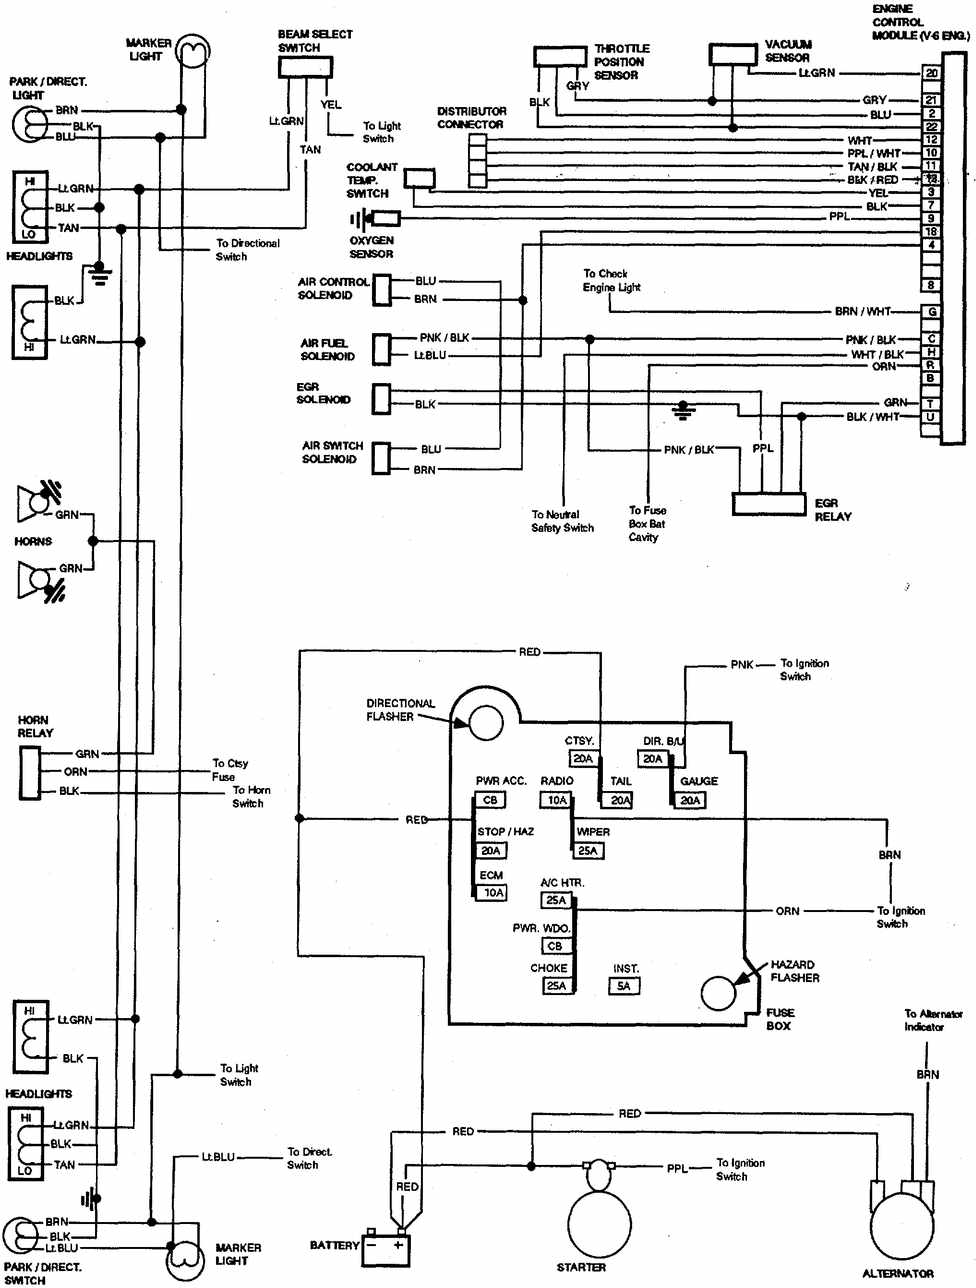 wiring diagram on 2005 chevy impala 3 4l engine starter location